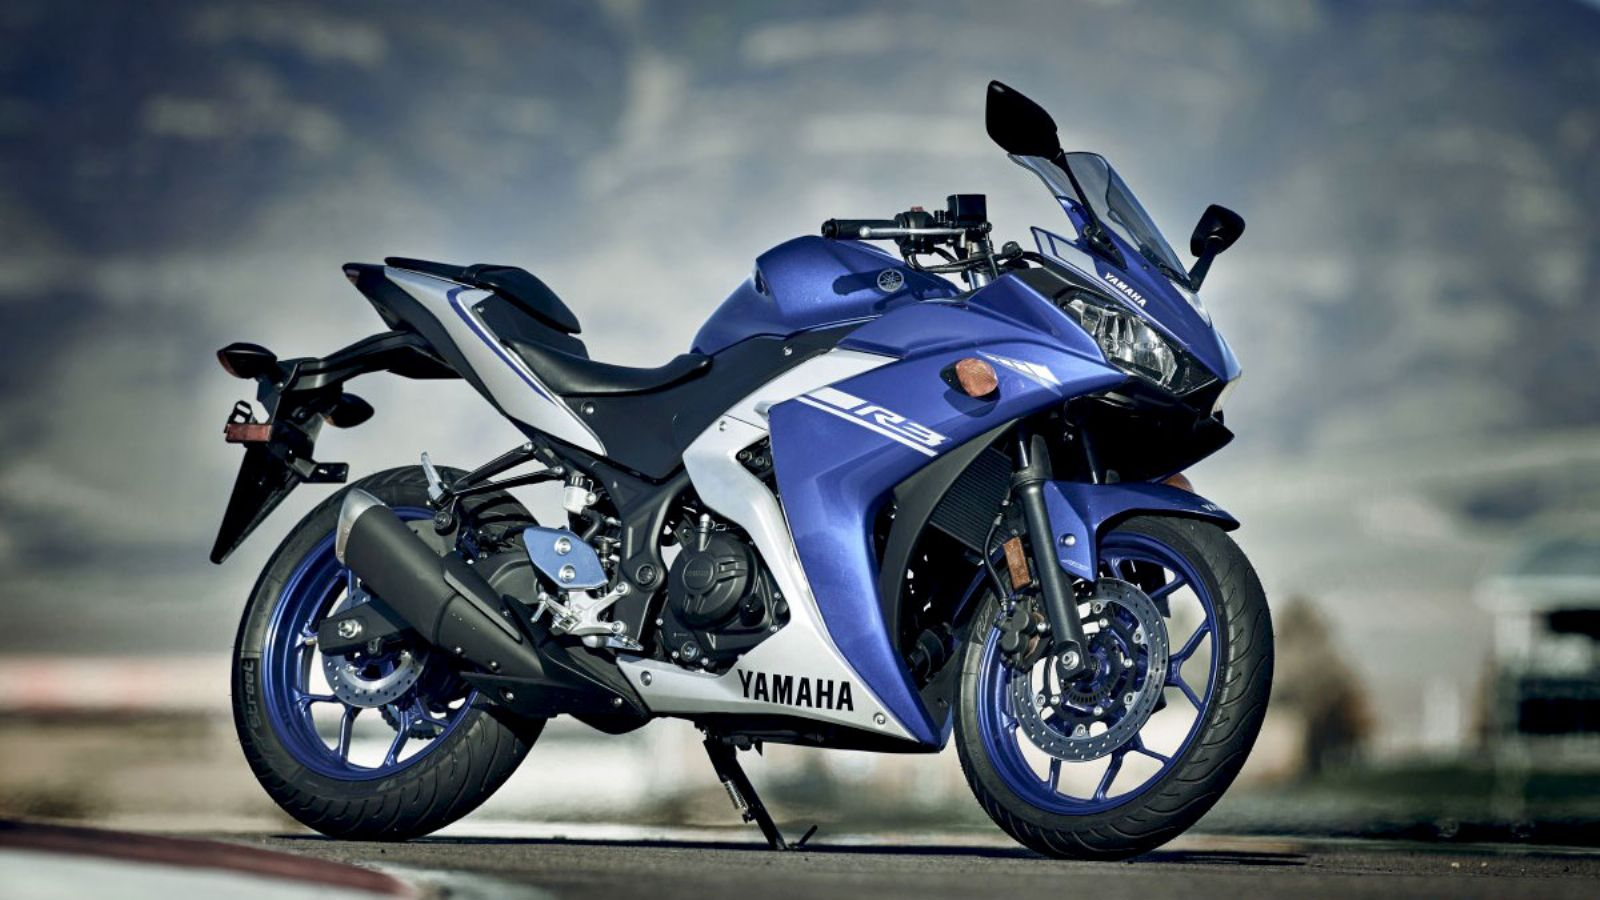 yamaha yzf r3 mt 03 yamaha. Black Bedroom Furniture Sets. Home Design Ideas